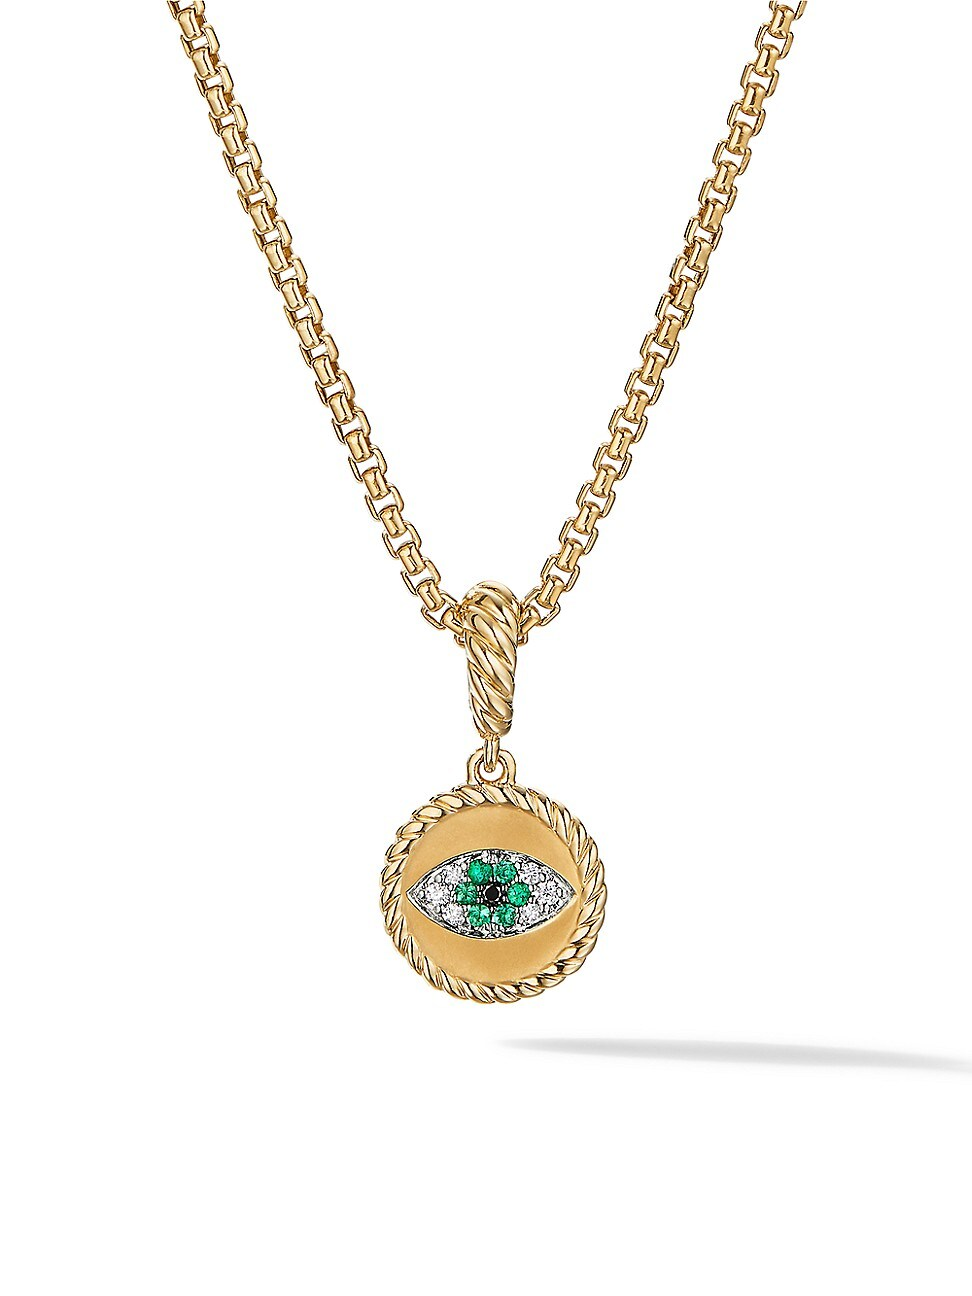 David Yurman Jewelrys WOMEN'S EVIL EYE AMULET IN 18K YELLOW GOLD WITH PAVÉ EMERALDS & DIAMONDS